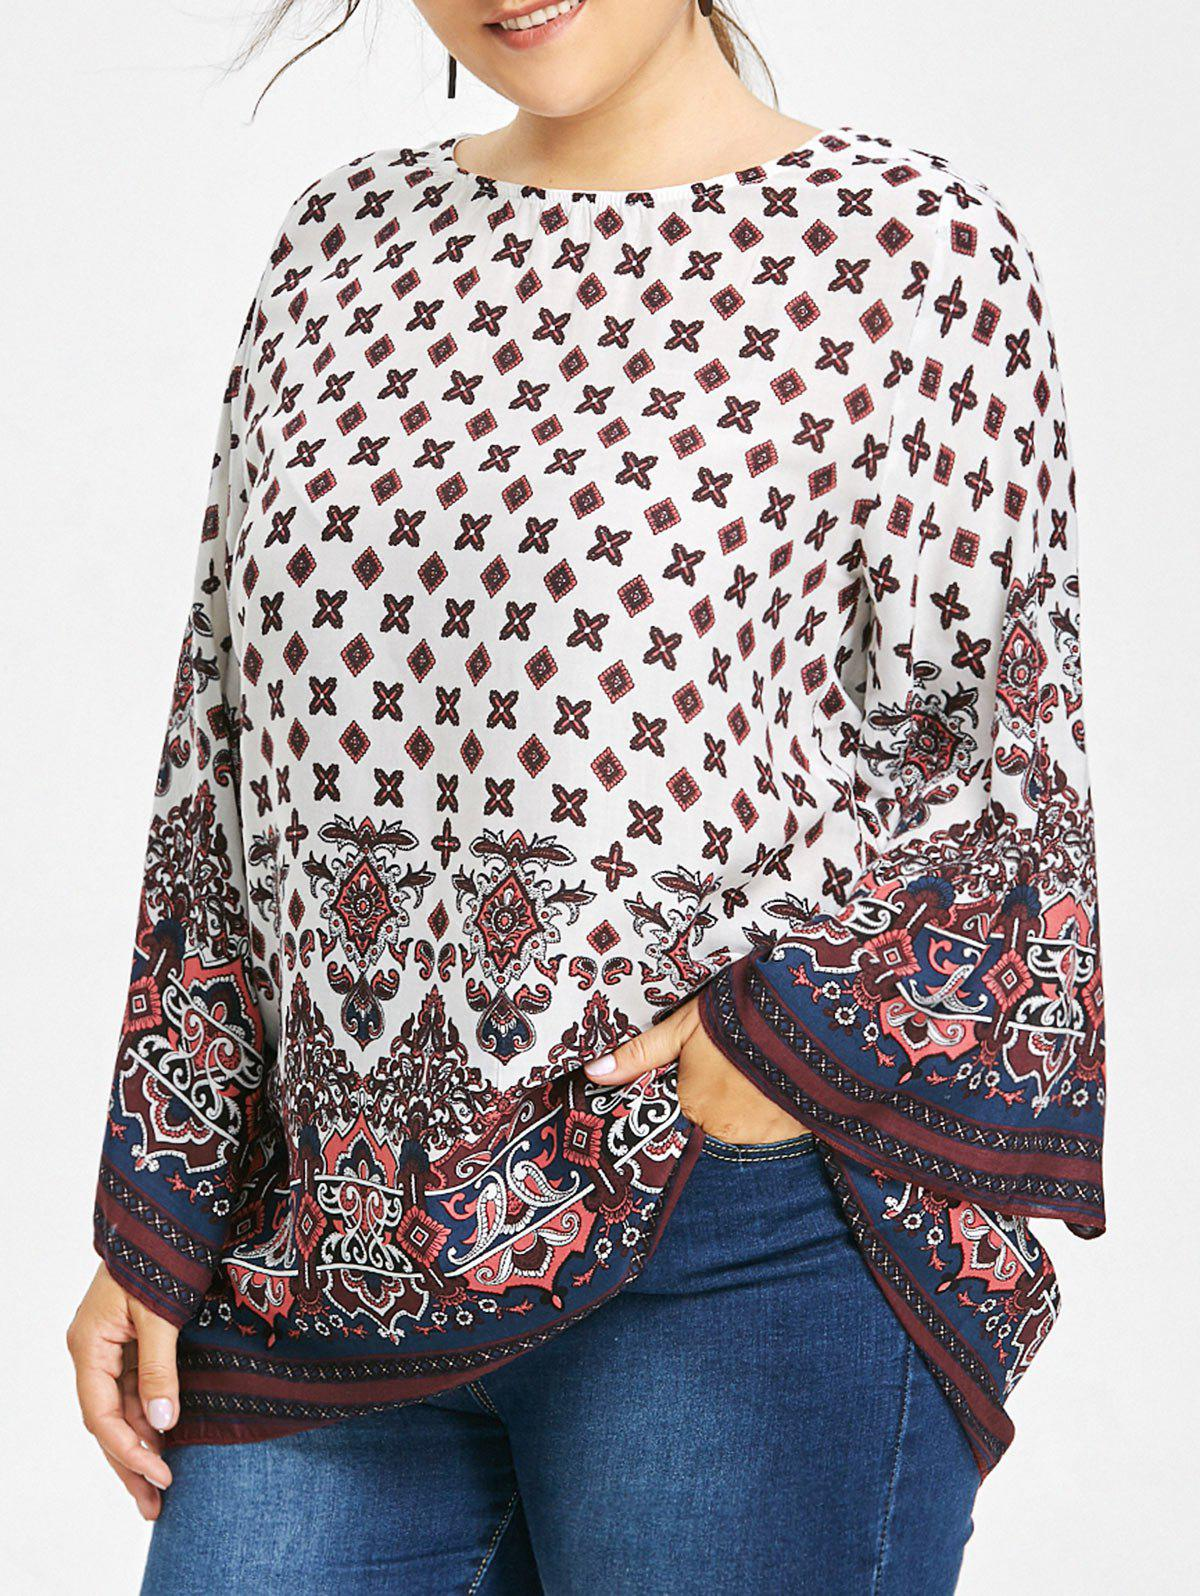 Plus Size Tribe Print Bell Sleeve BlouseWOMEN<br><br>Size: 5XL; Color: WHITE; Material: Polyester; Shirt Length: Long; Sleeve Length: Full; Collar: Scoop Neck; Style: Fashion; Season: Fall,Spring; Pattern Type: Print; Weight: 0.2050kg; Package Contents: 1 x Blouse;